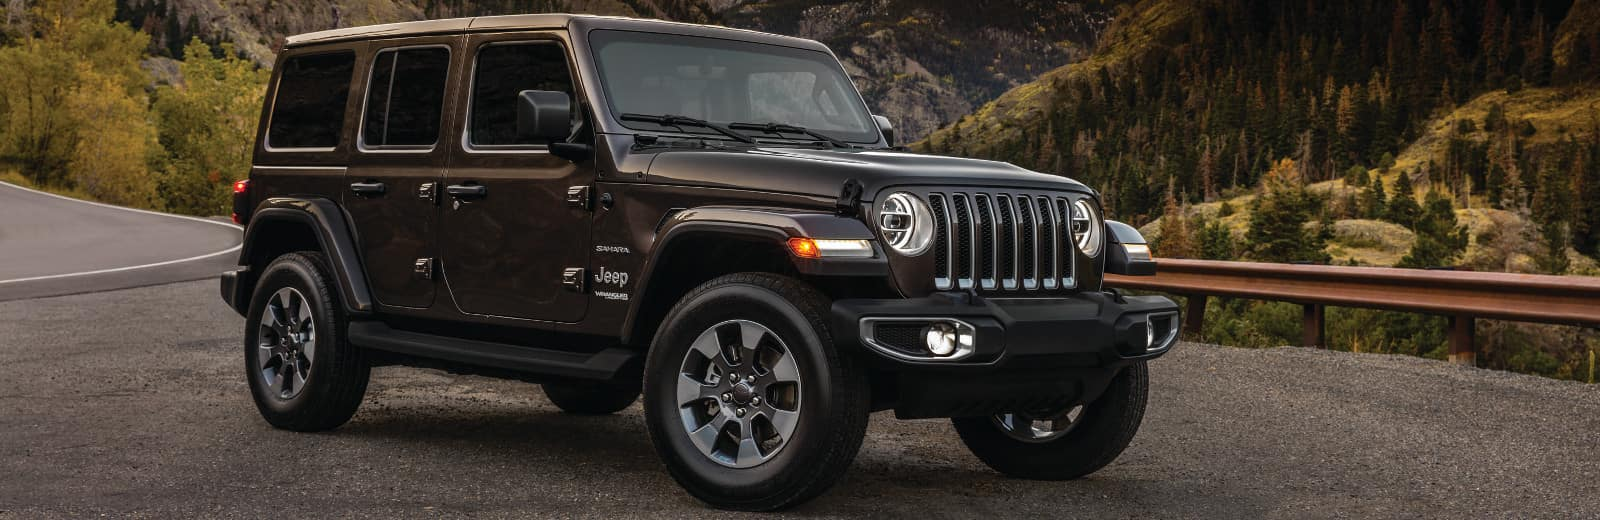 A Jeep Wrangler parked in front of the mountains